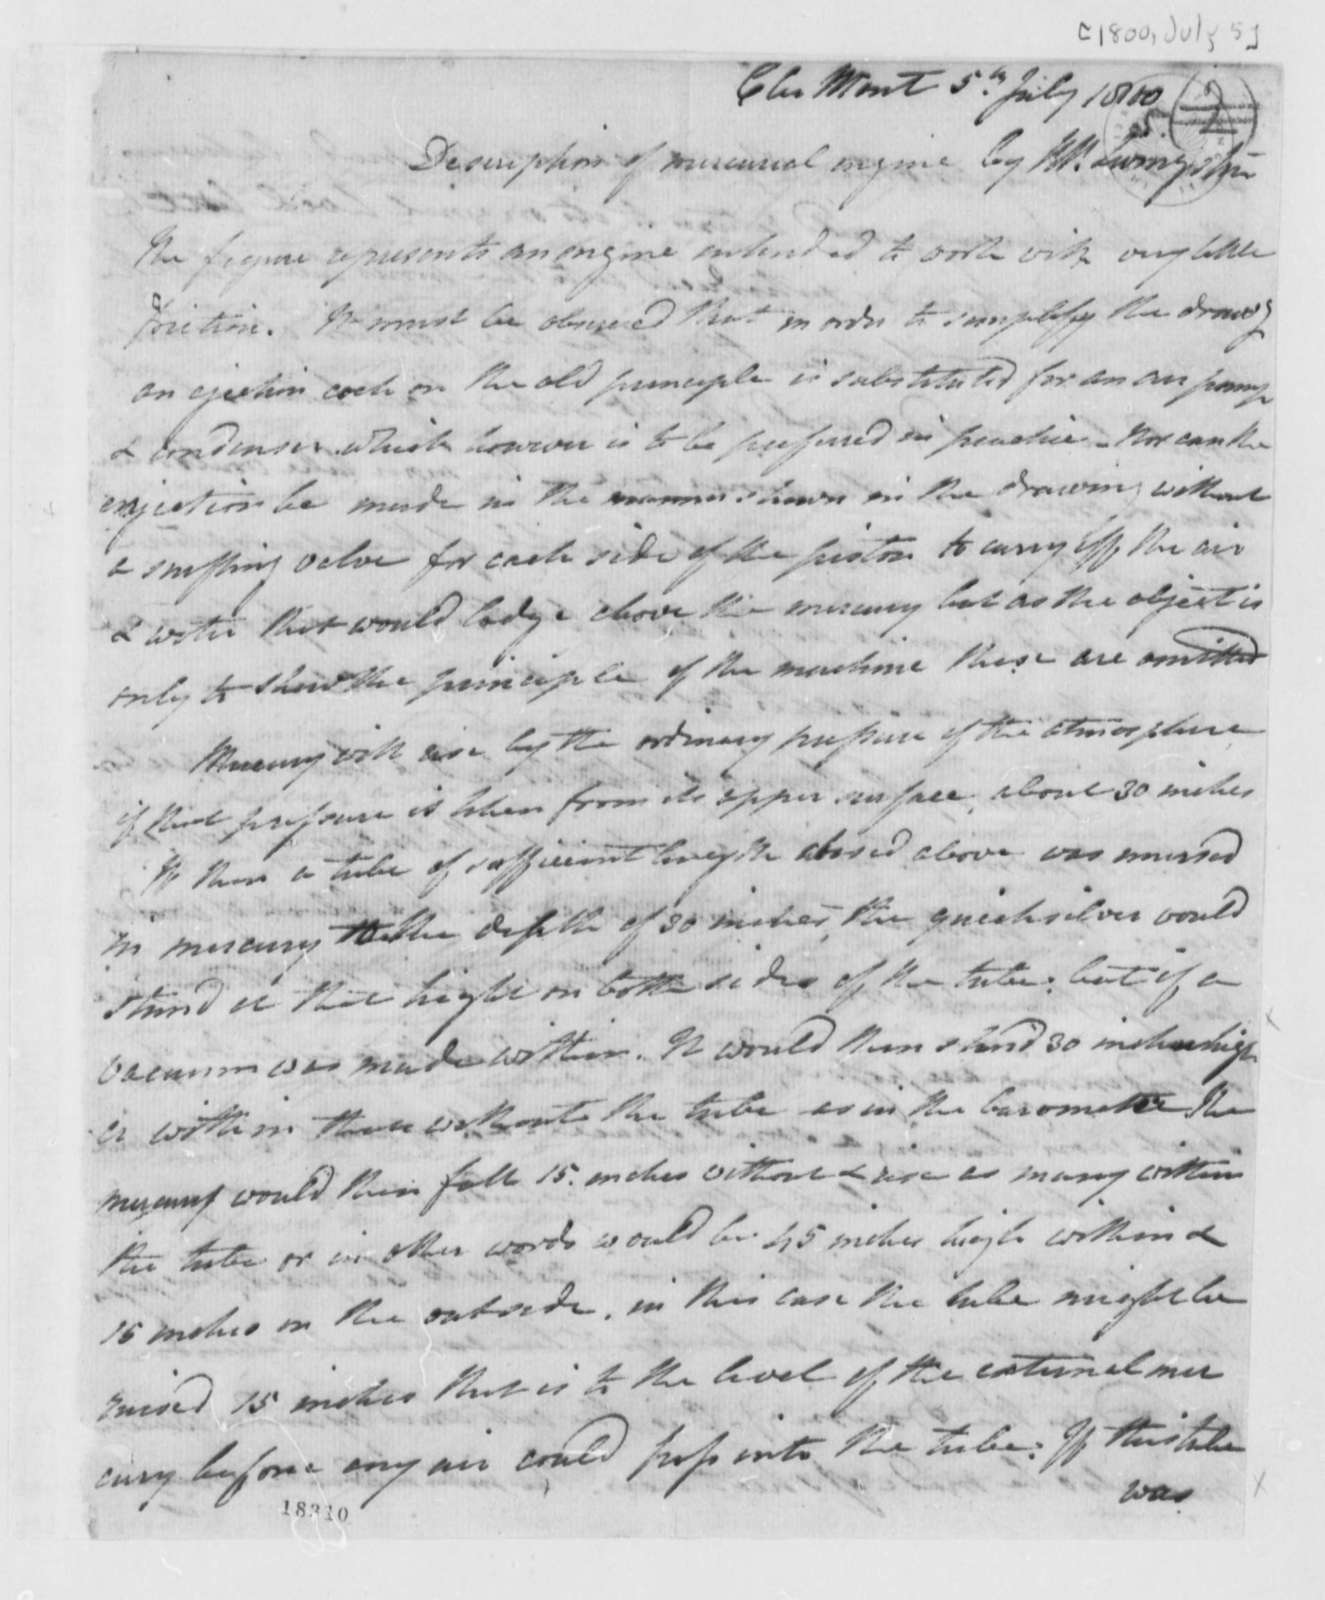 Robert R. Livingston to Thomas Jefferson, July 5, 1800, with Drawing